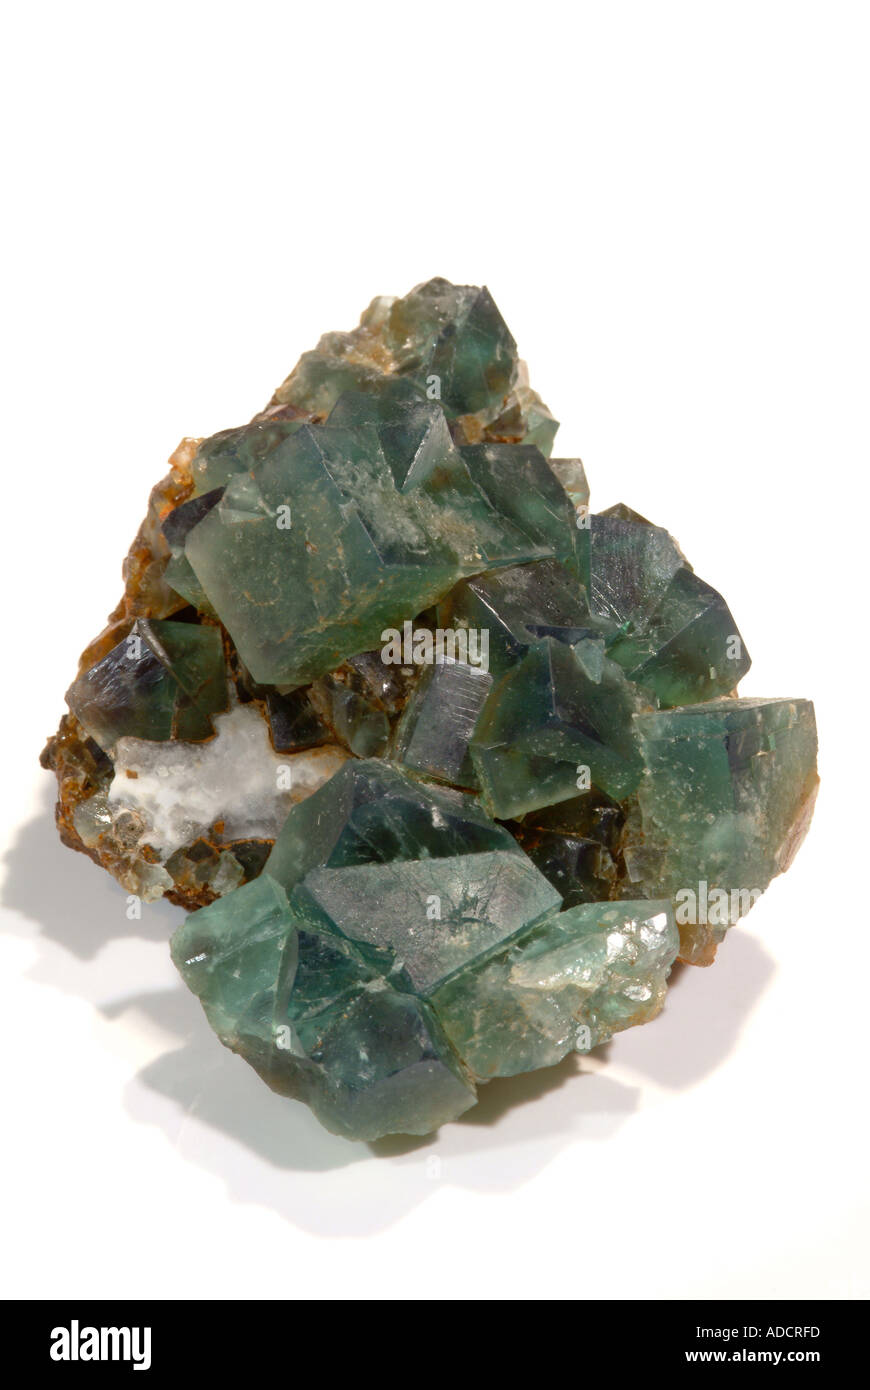 Mineral Fluorite, Blue-green cubes with twinning, Rogerly Quarry, Stanhope, Co. Durham, England - Stock Image